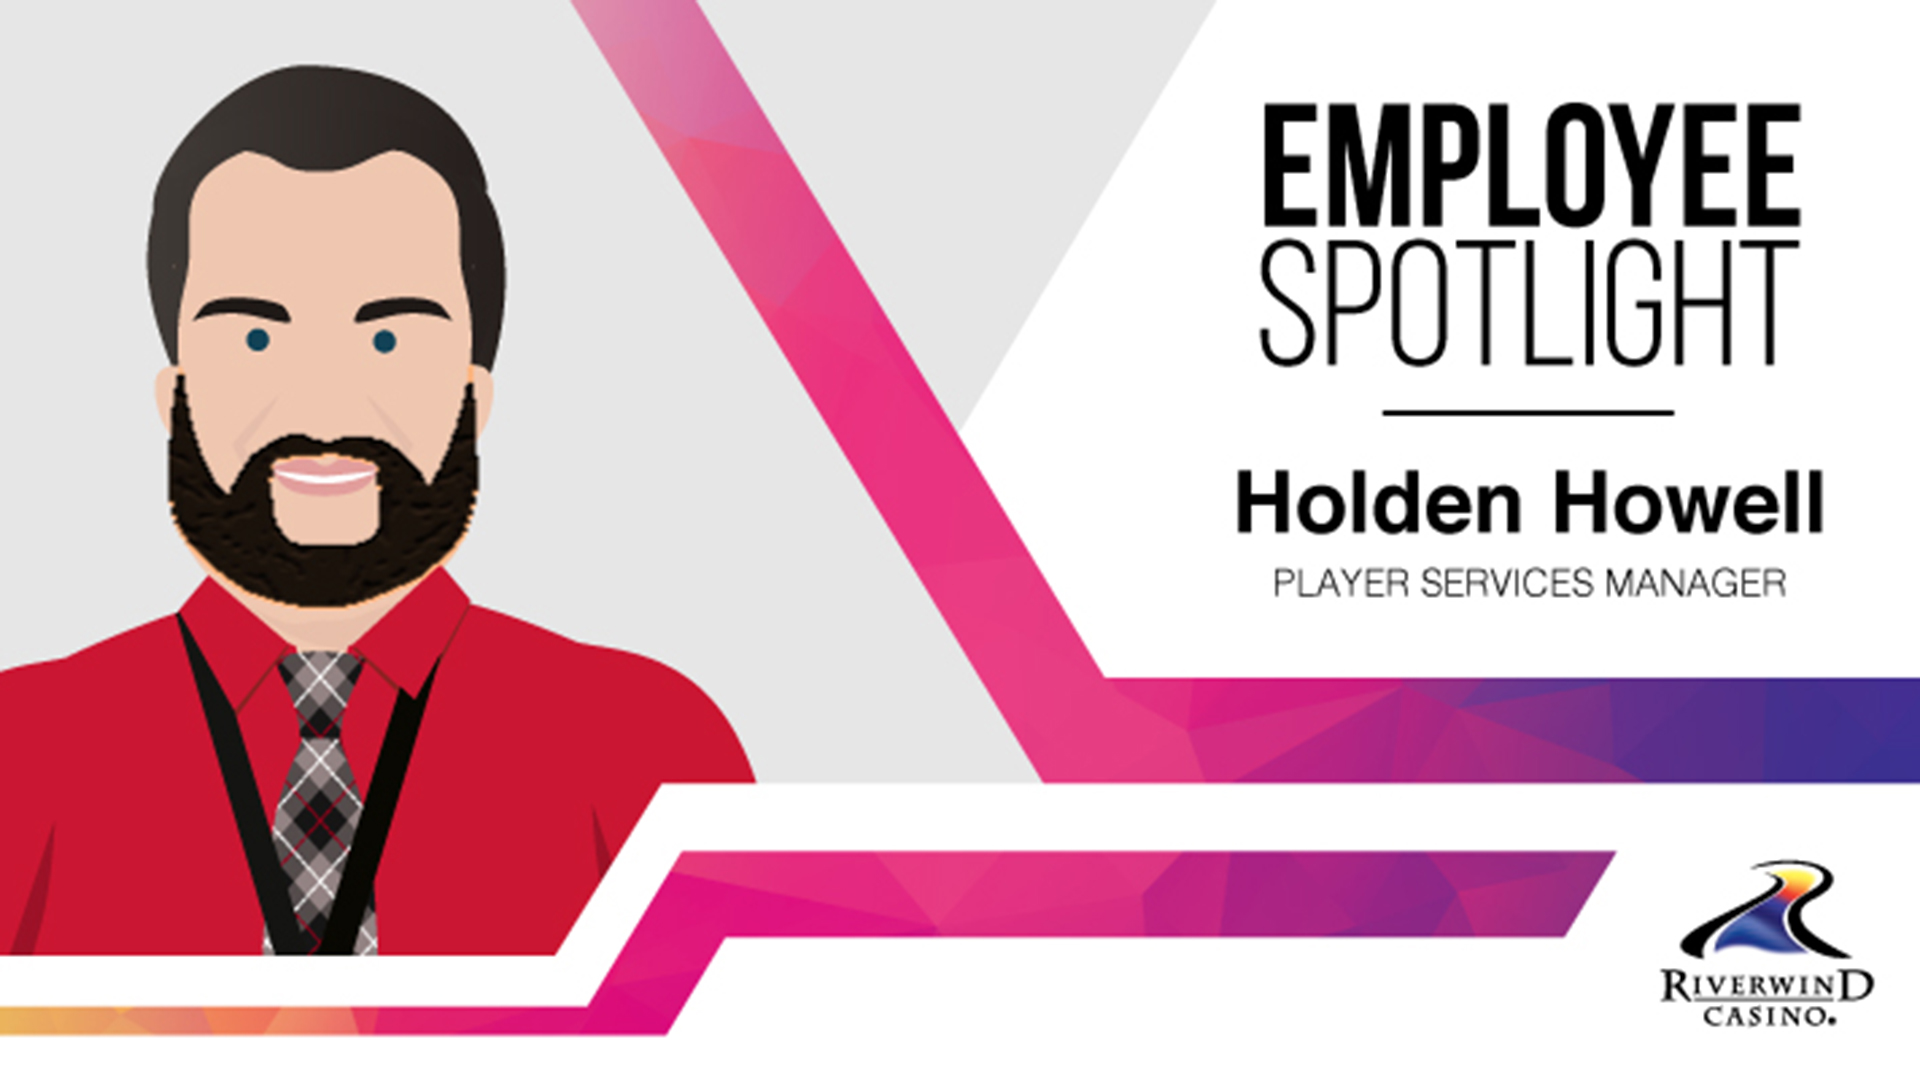 Get to Know Our Team: Holden H.